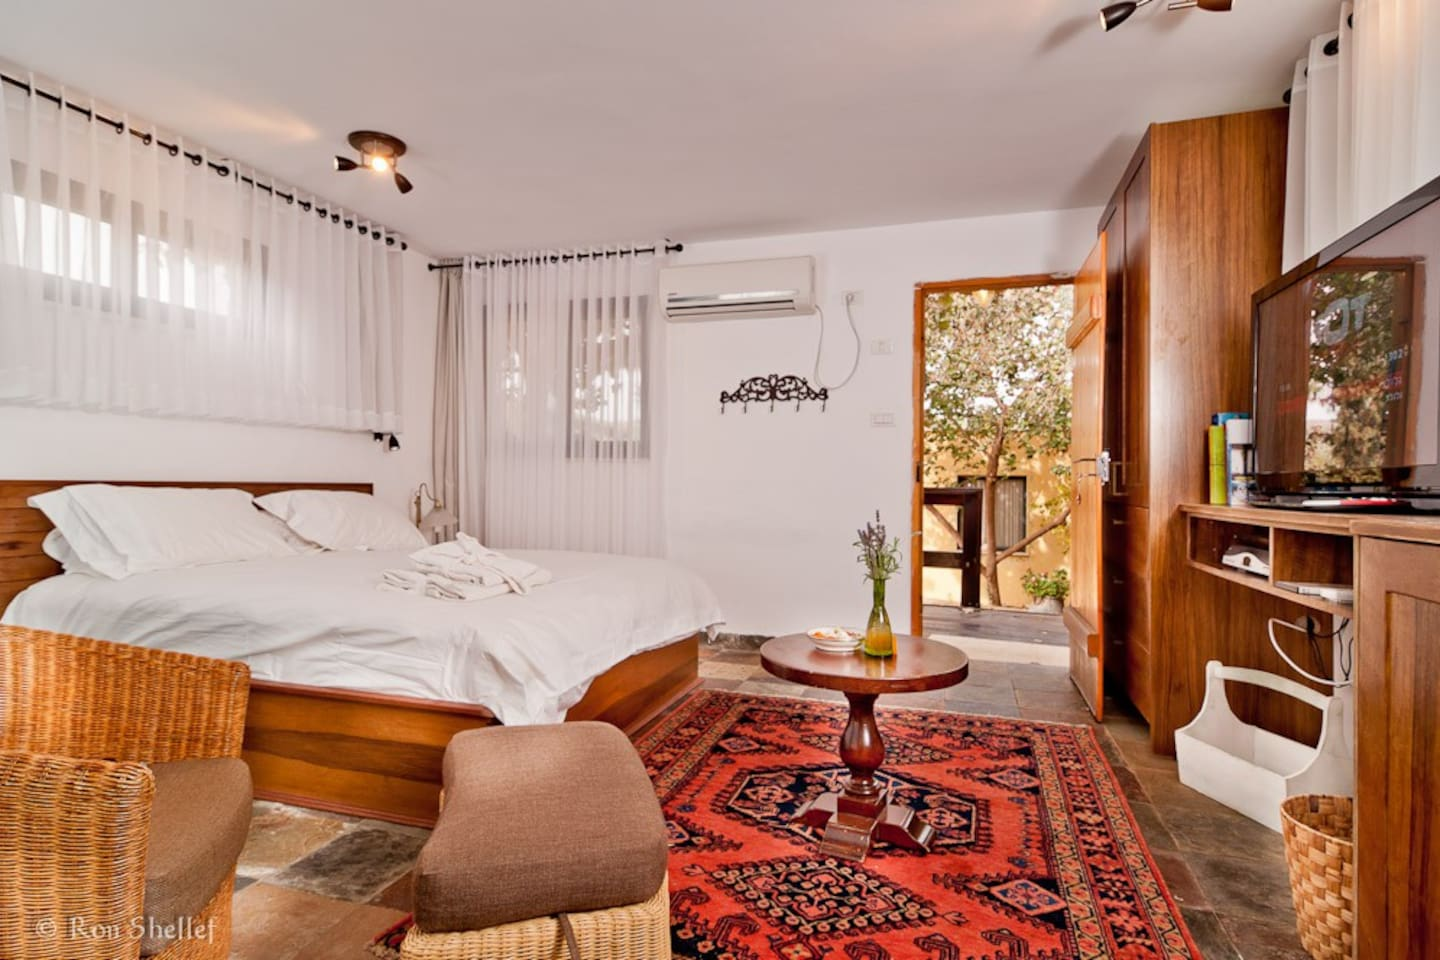 Comfortable beds - luxurious room